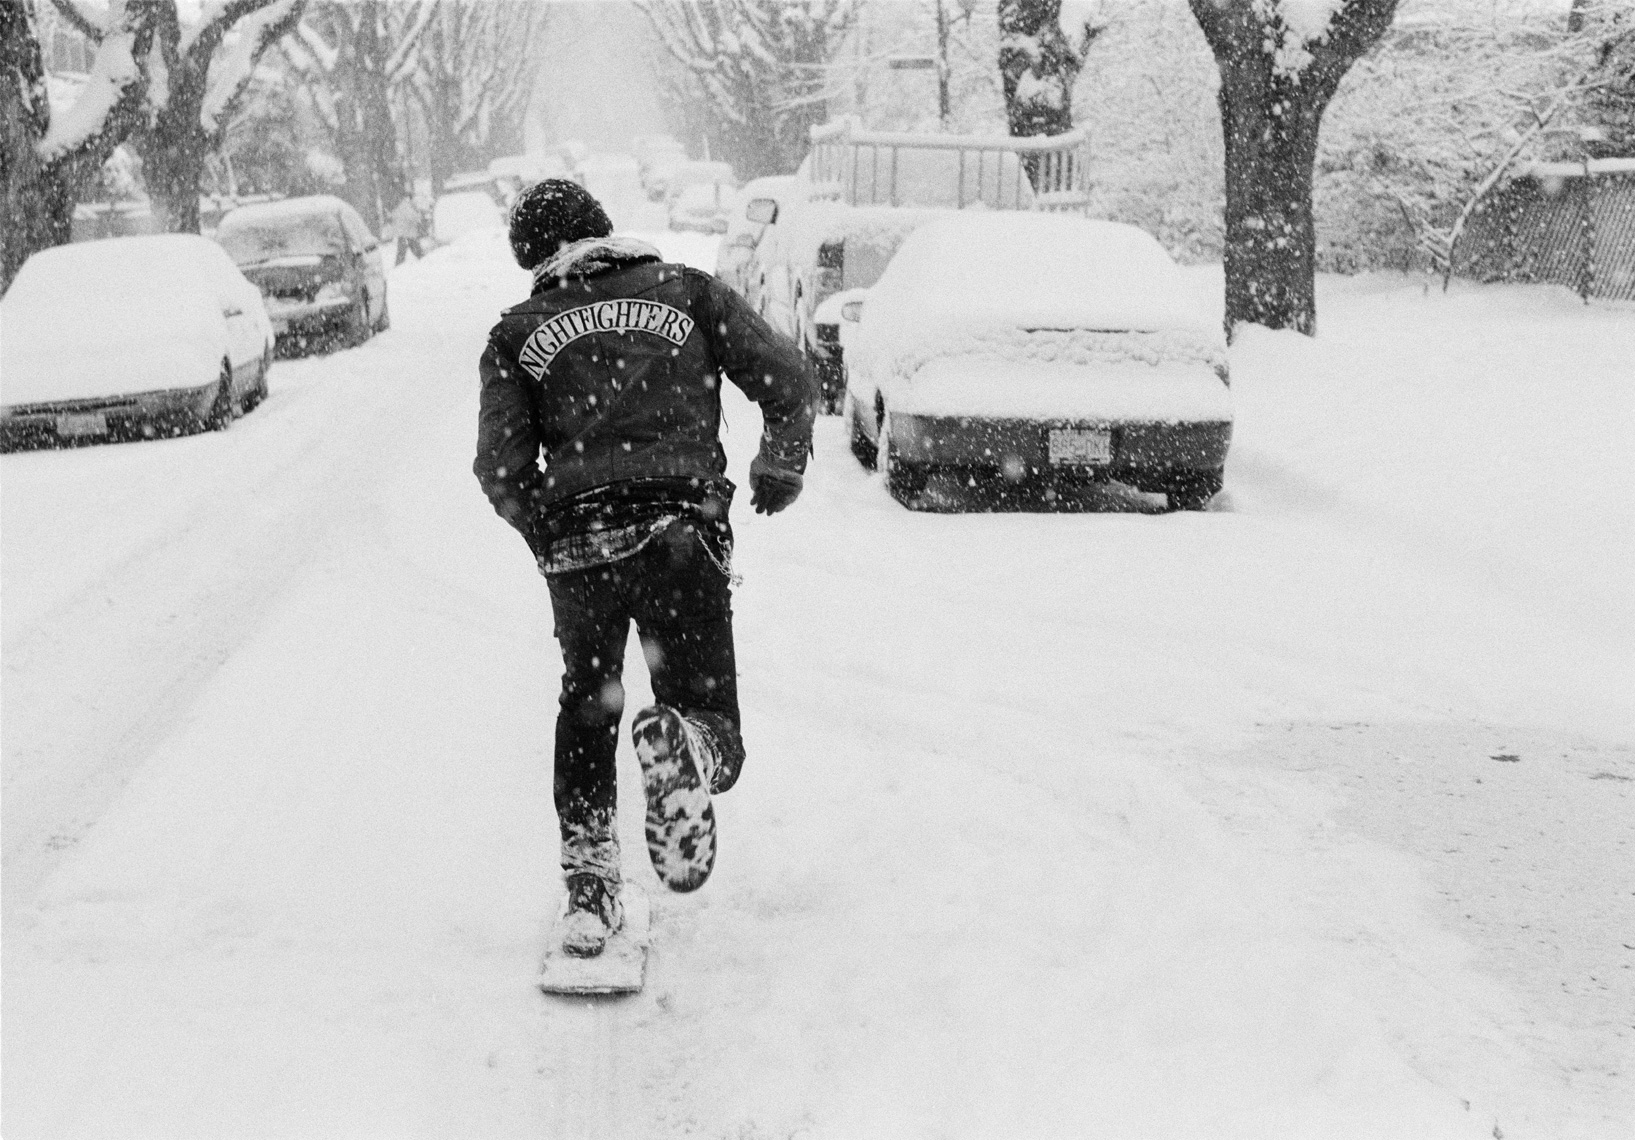 chris-pushing-in-snow-snowday-2008-hires.jpg